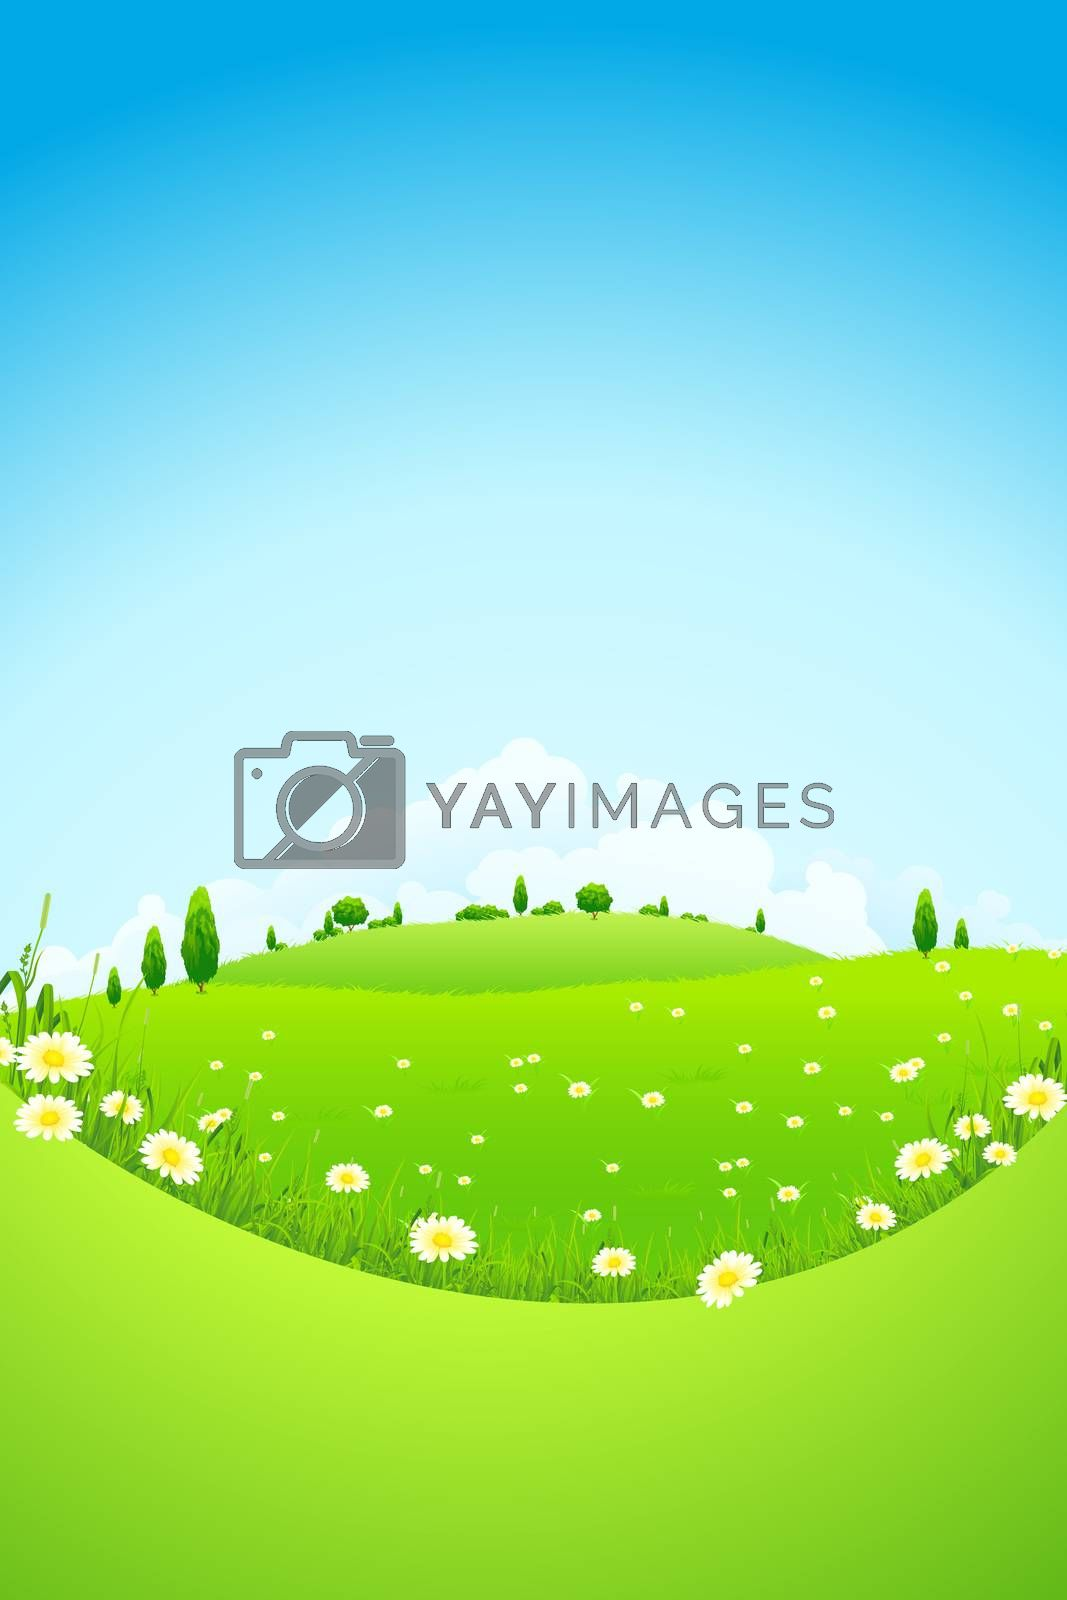 Landscape with Green Trees and Fields by WaD